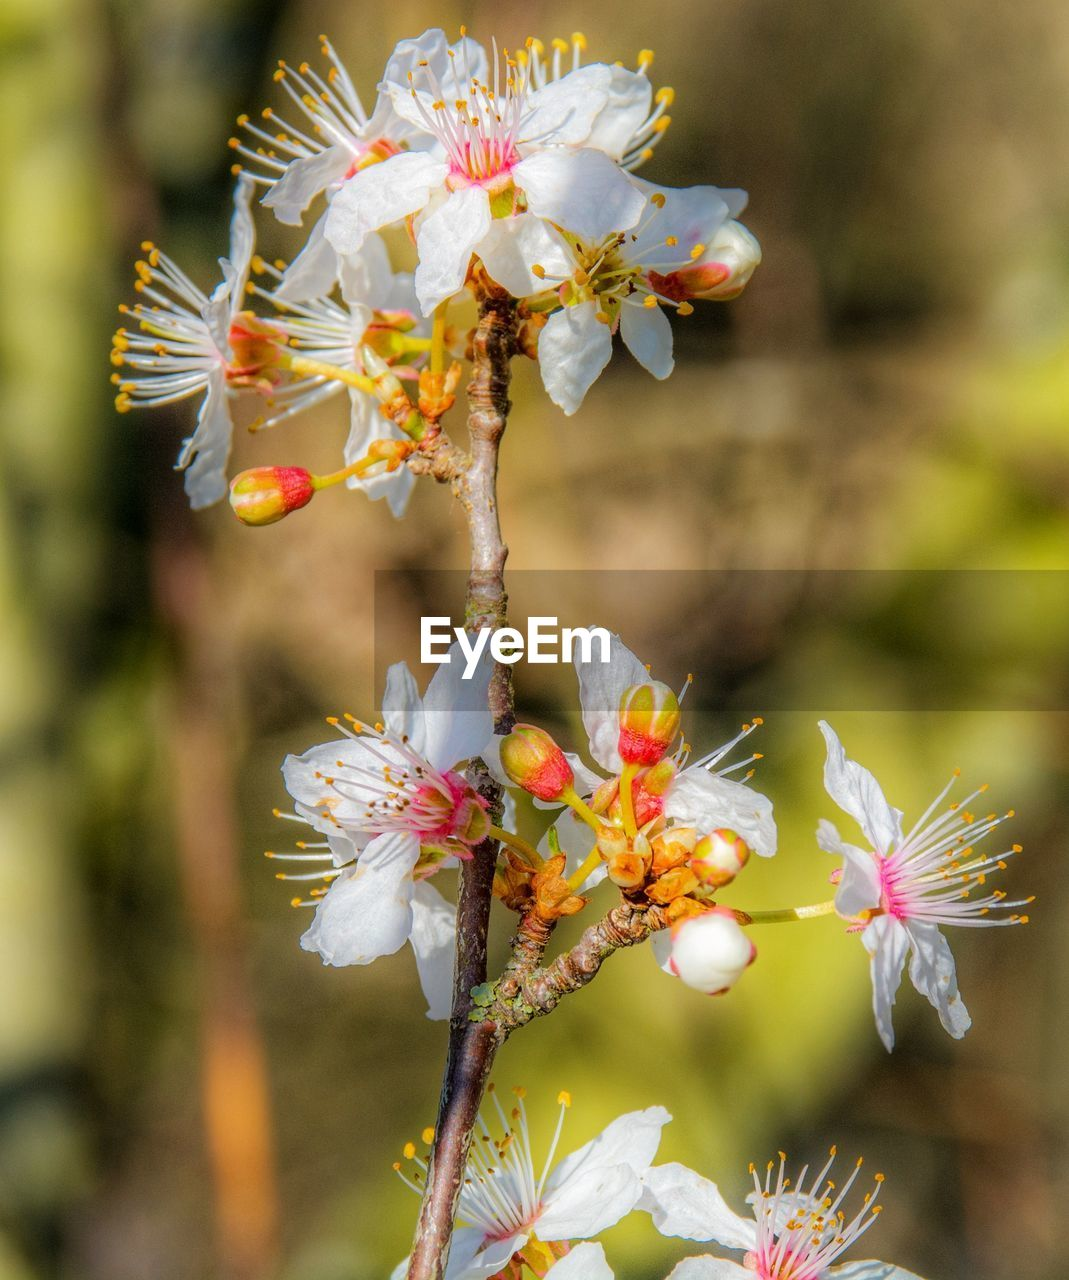 flowering plant, flower, plant, growth, fragility, vulnerability, freshness, beauty in nature, petal, flower head, close-up, focus on foreground, inflorescence, pollen, white color, day, no people, nature, blossom, botany, outdoors, springtime, cherry blossom